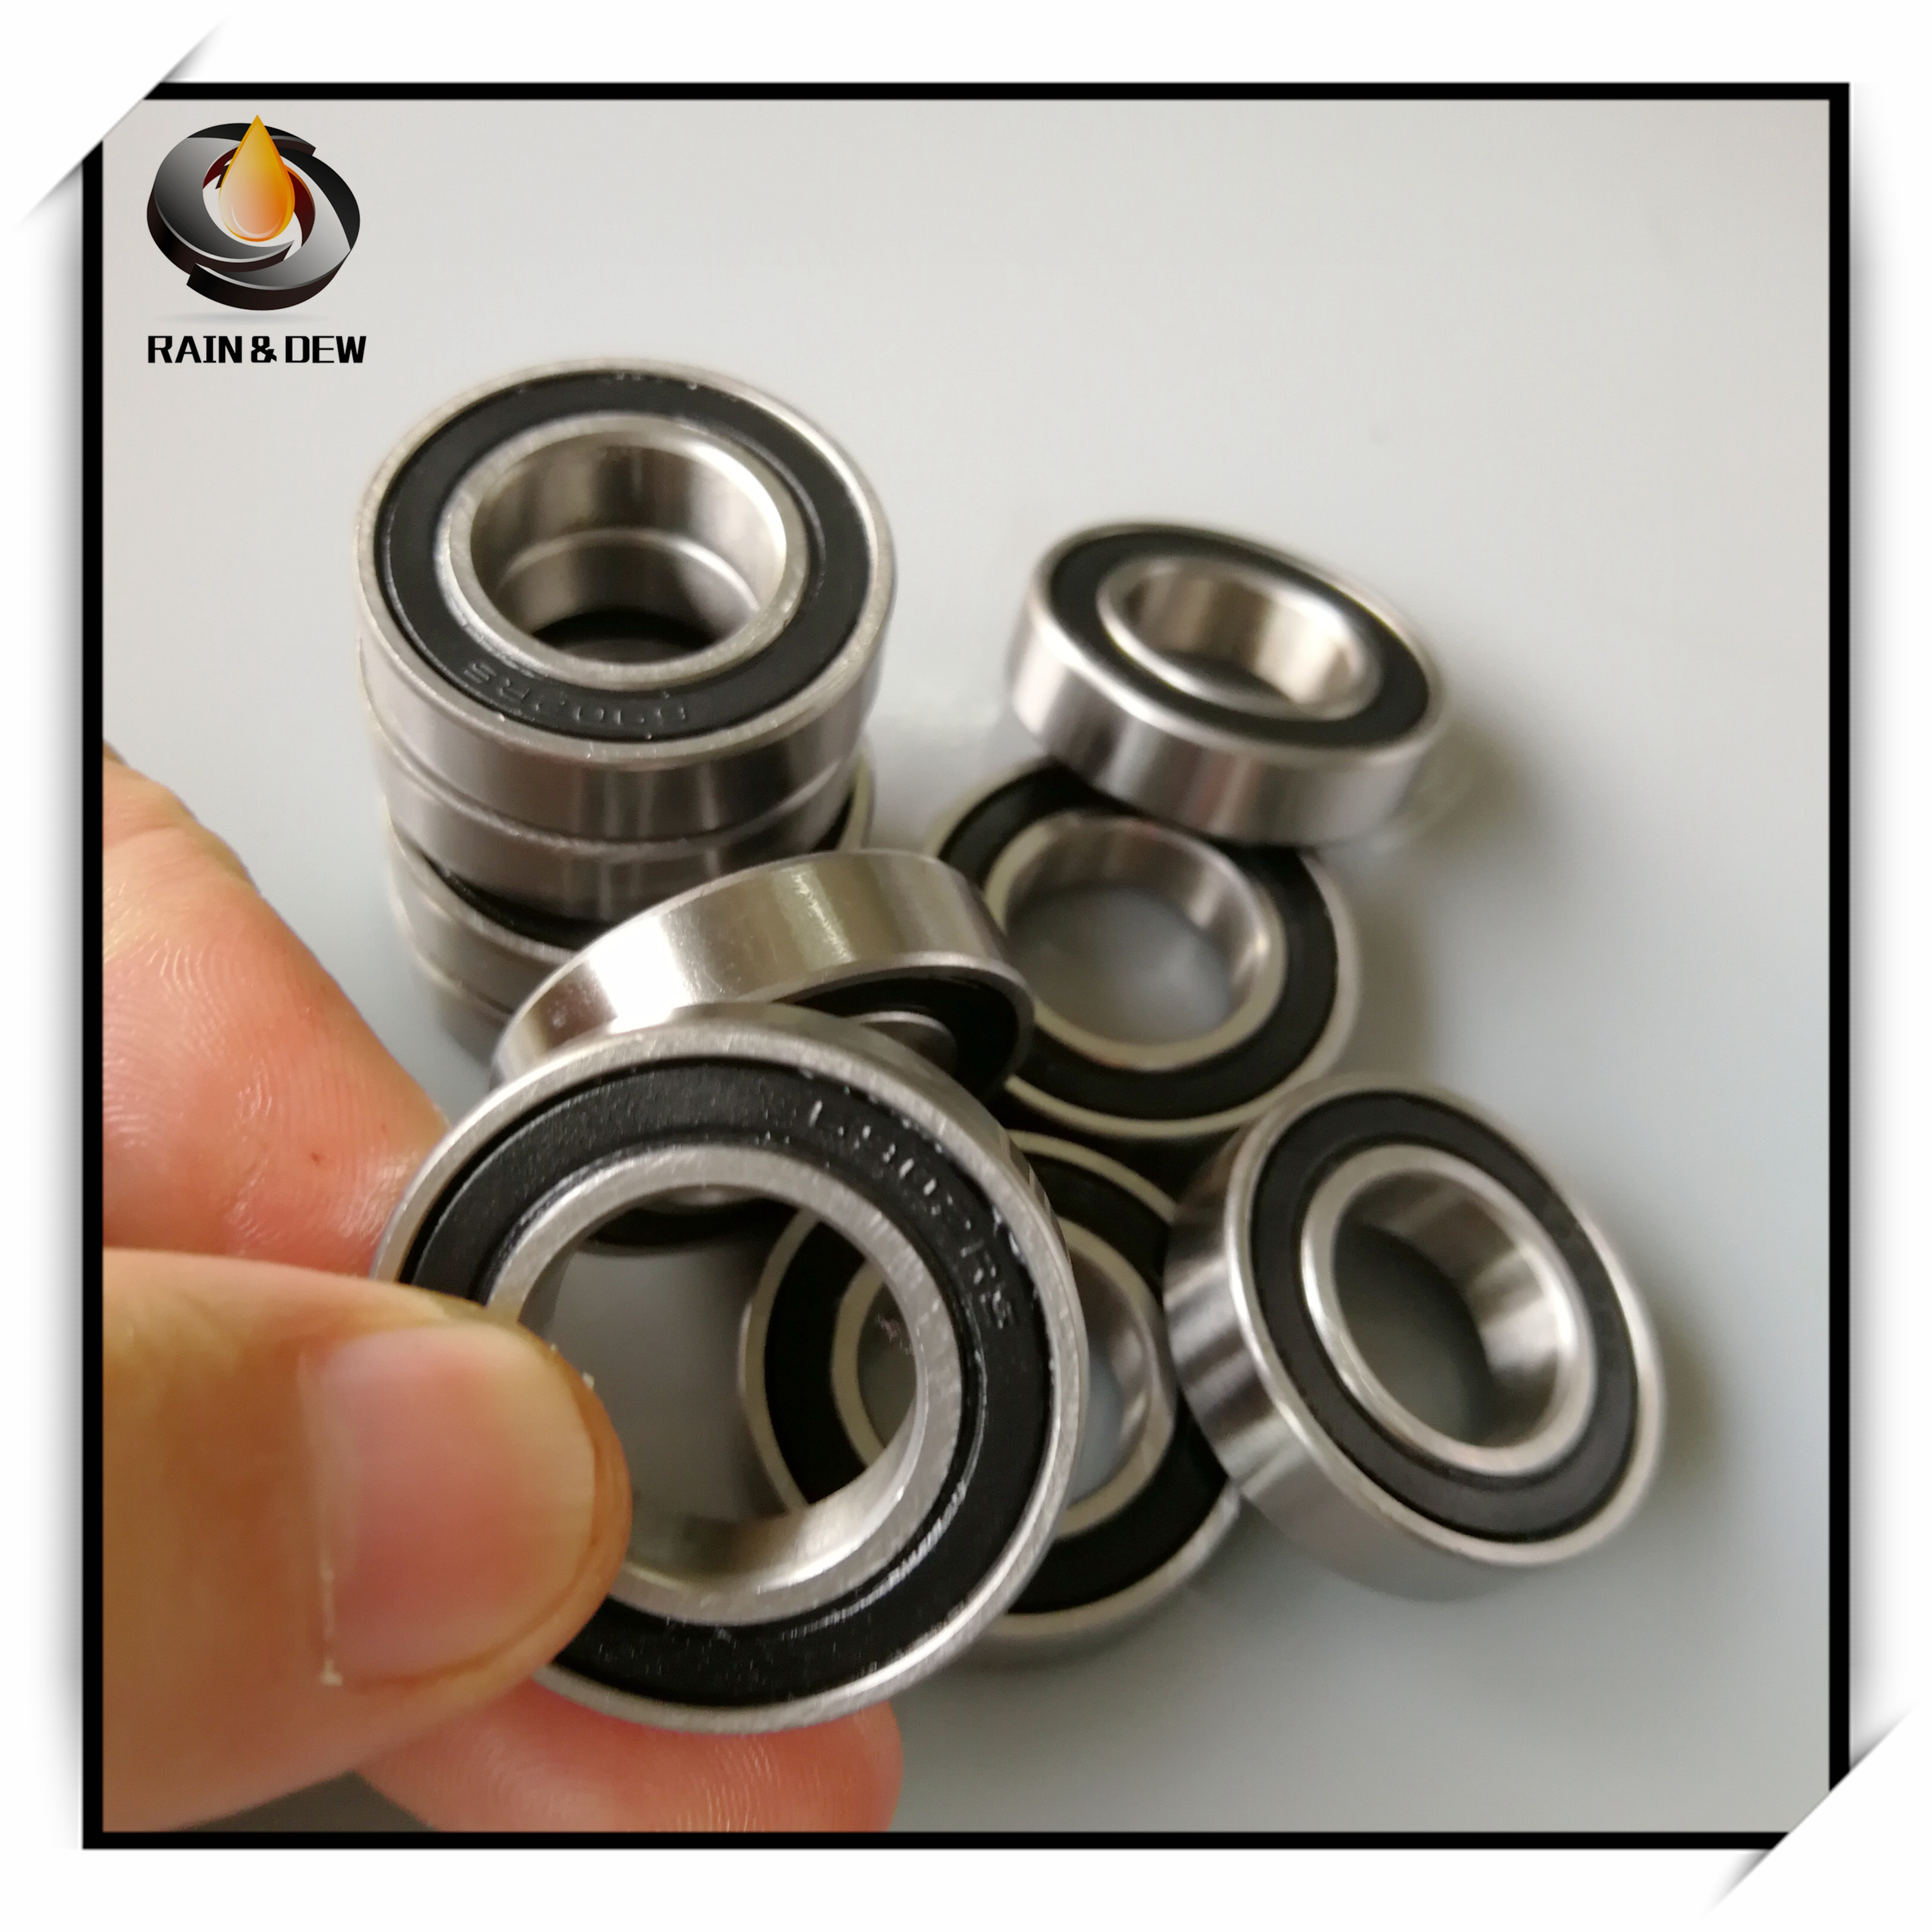 10Pcs <font><b>6902</b></font>-<font><b>2RS</b></font> <font><b>Bearing</b></font> ABEC-7 15x28x7 mm Metric Thin Section <font><b>6902</b></font> <font><b>2RS</b></font> Ball <font><b>Bearings</b></font> 6902RS 61902 RS image